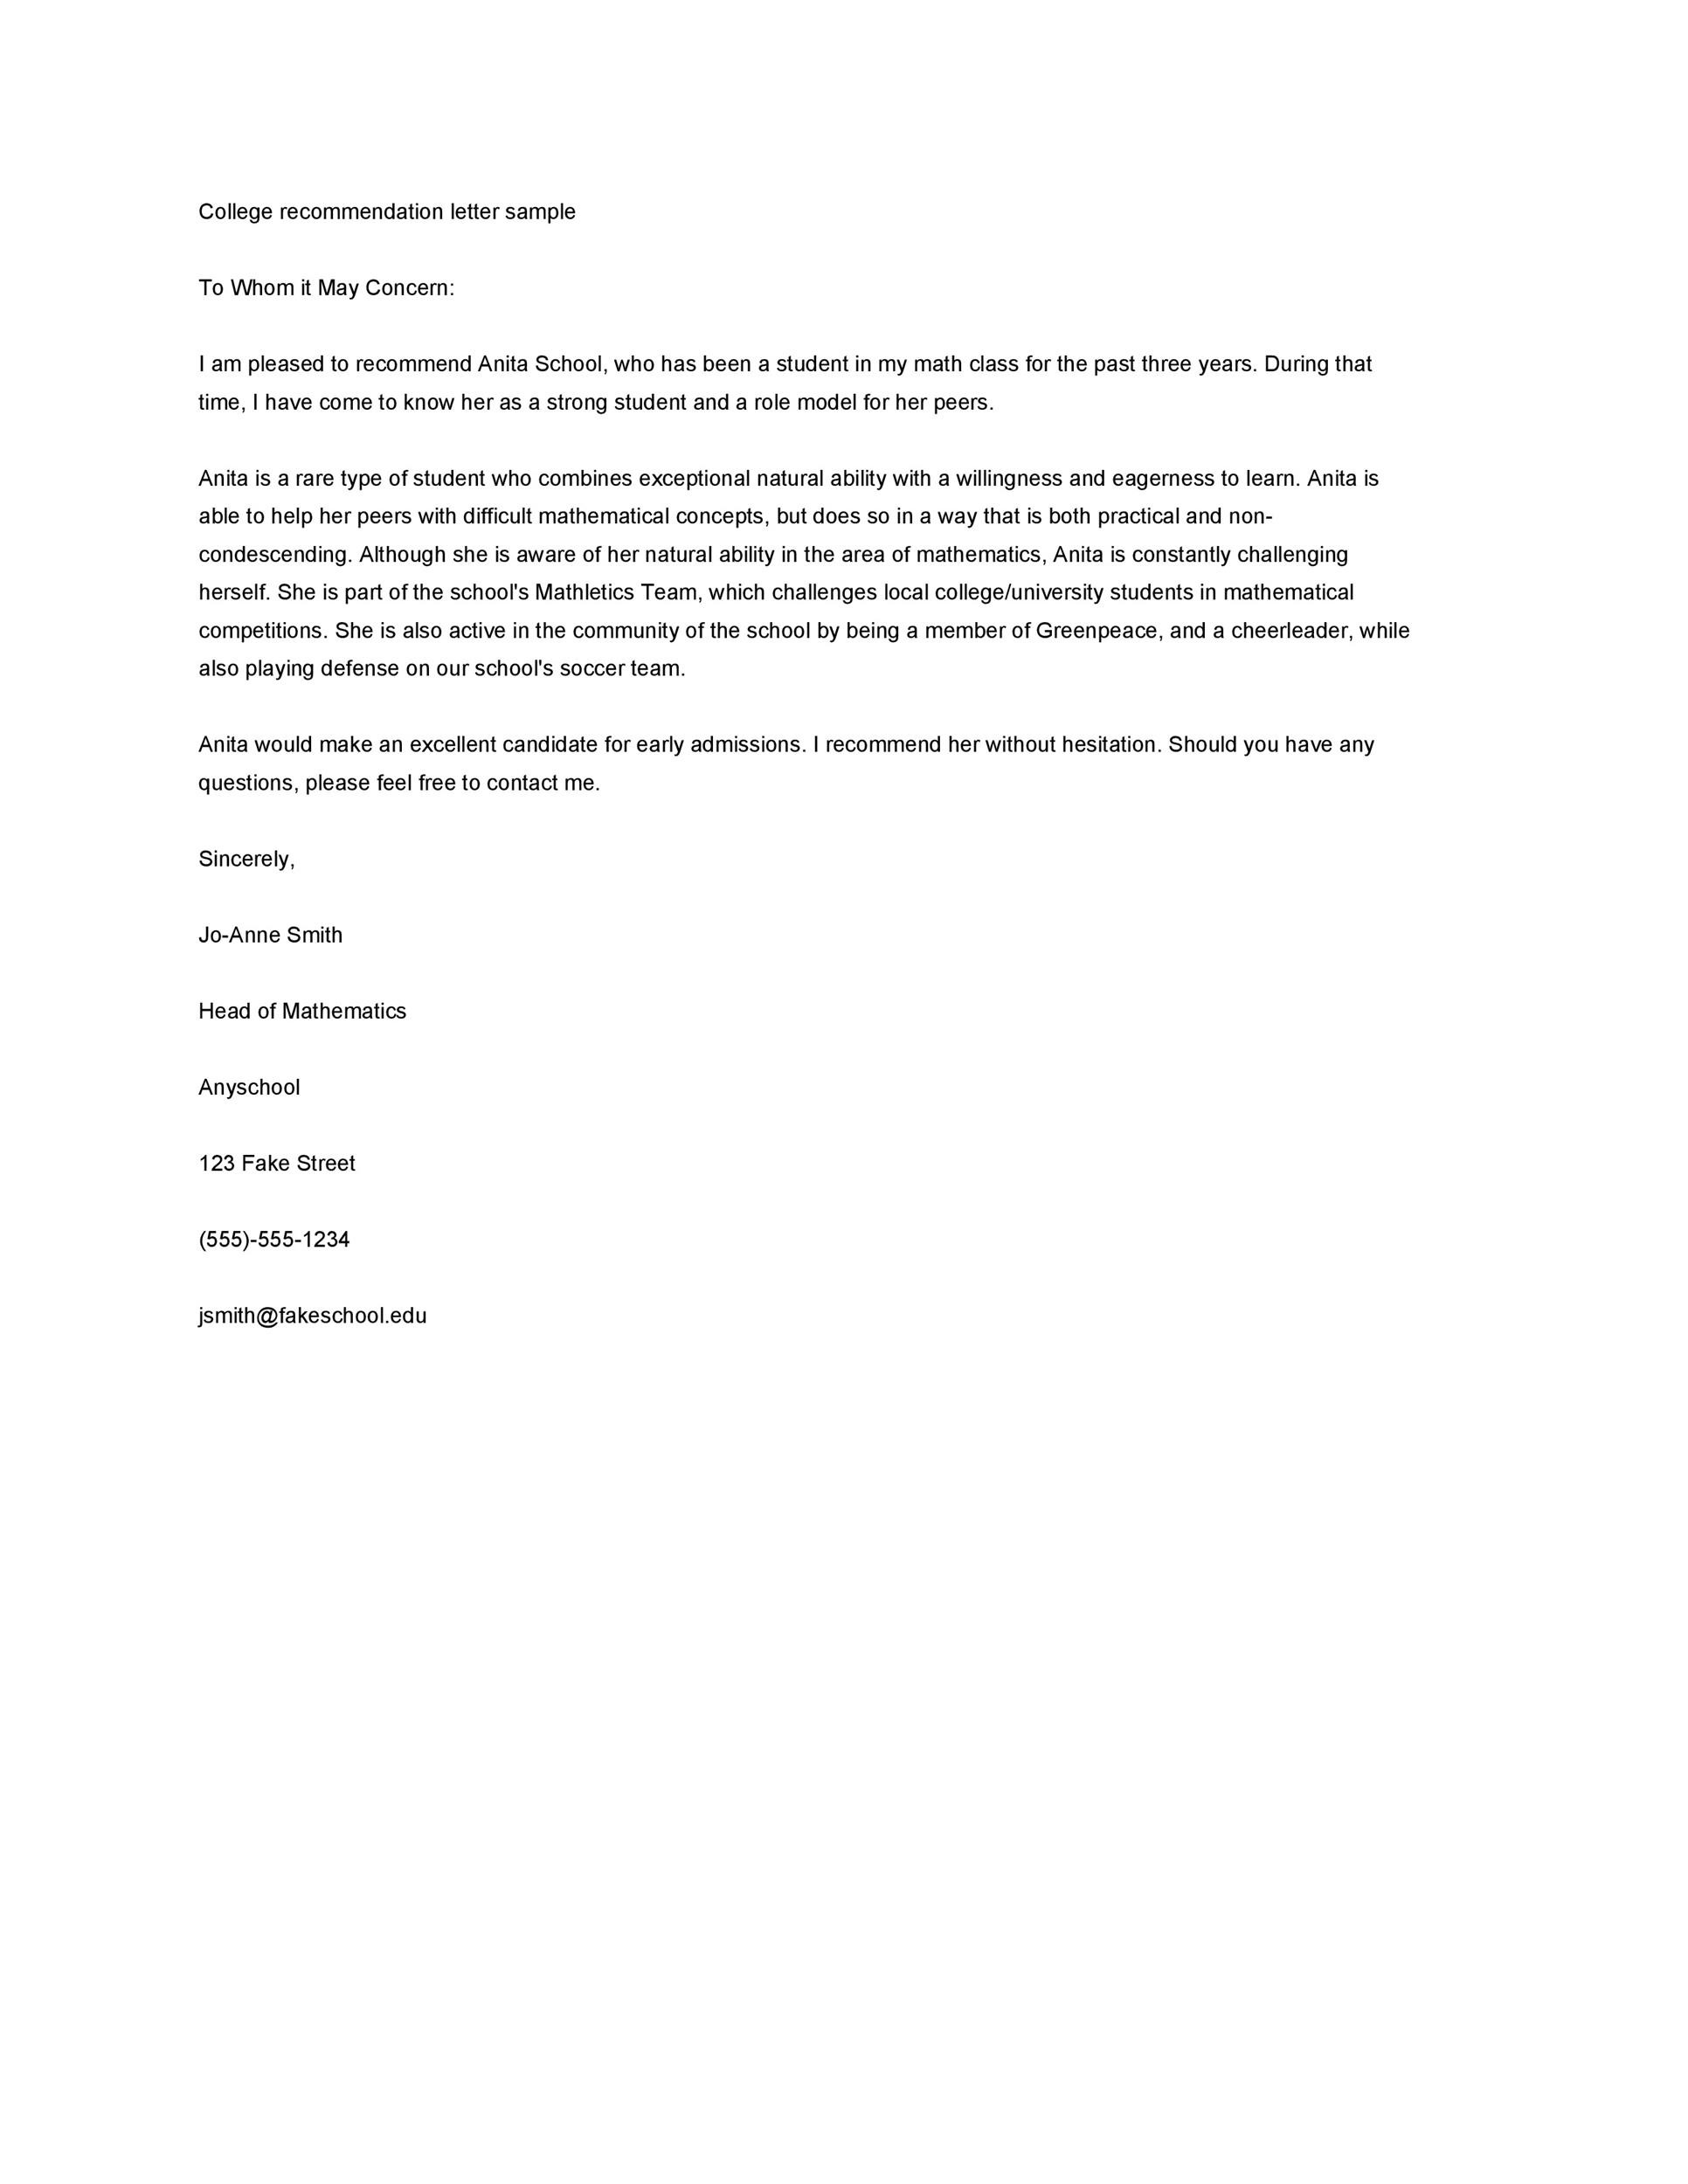 sample reference letter 43 free letter of recommendation templates amp samples 10336